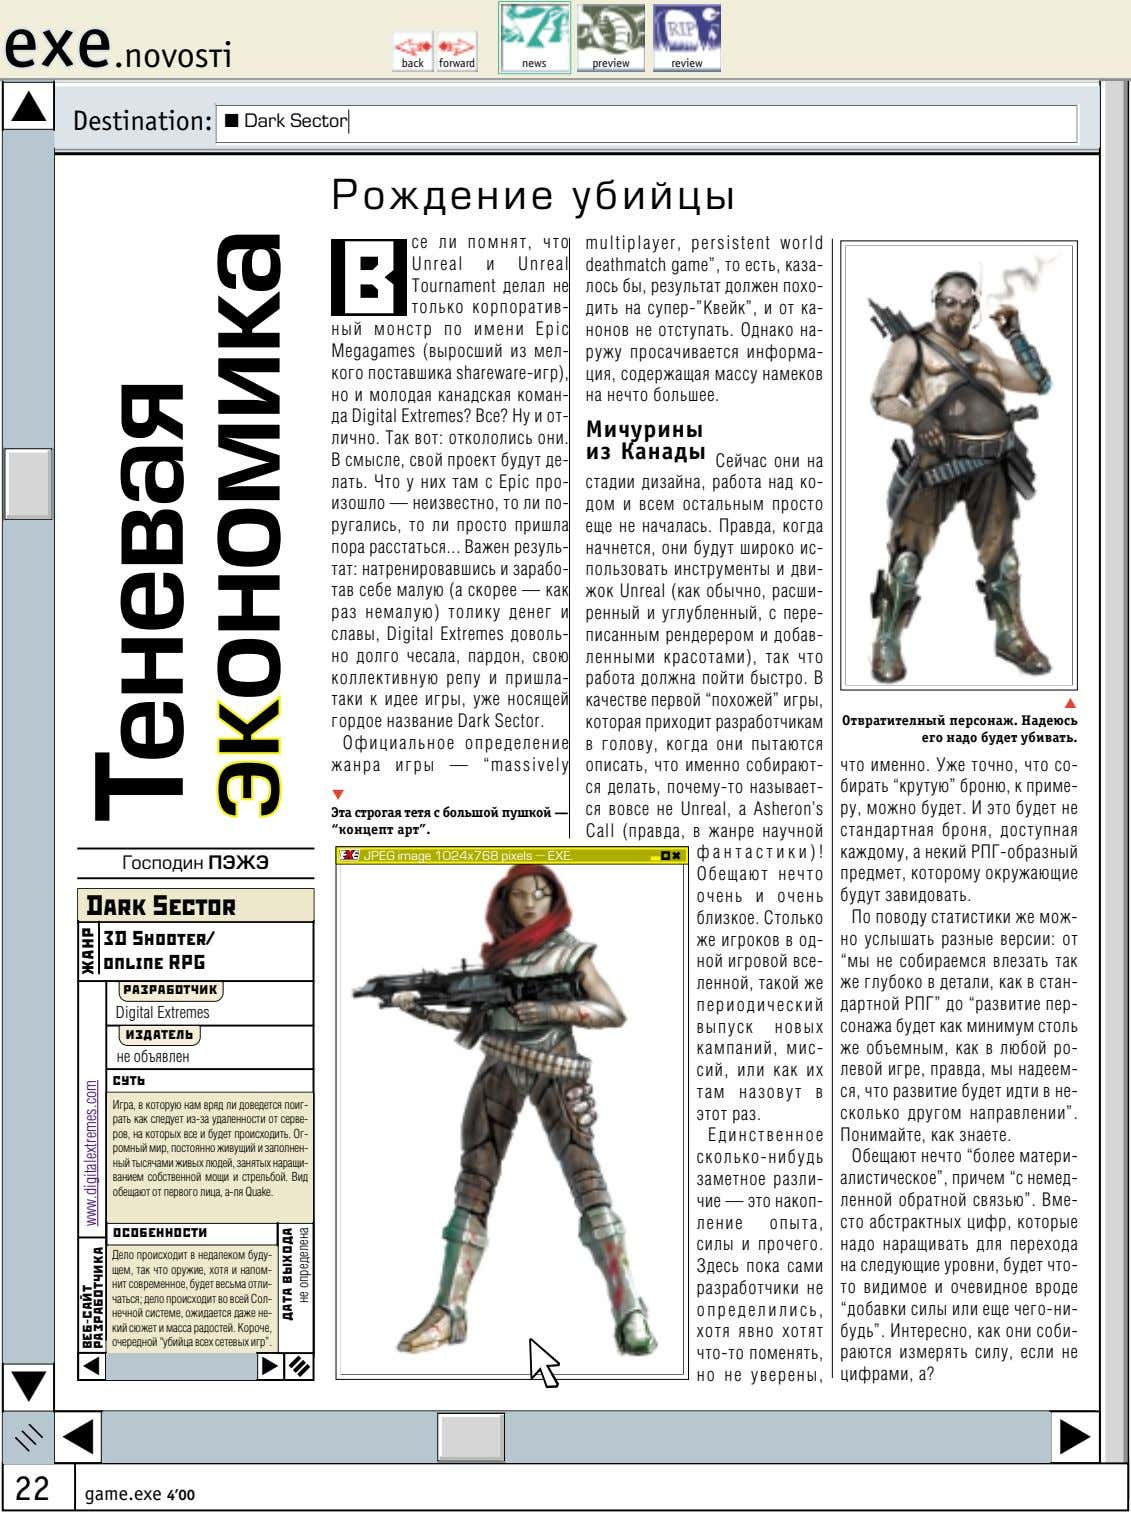 exe.novosтi back forward news preview review Destination: Dark Sector Ðîæäåíèå óáèéöû В ÒÂ